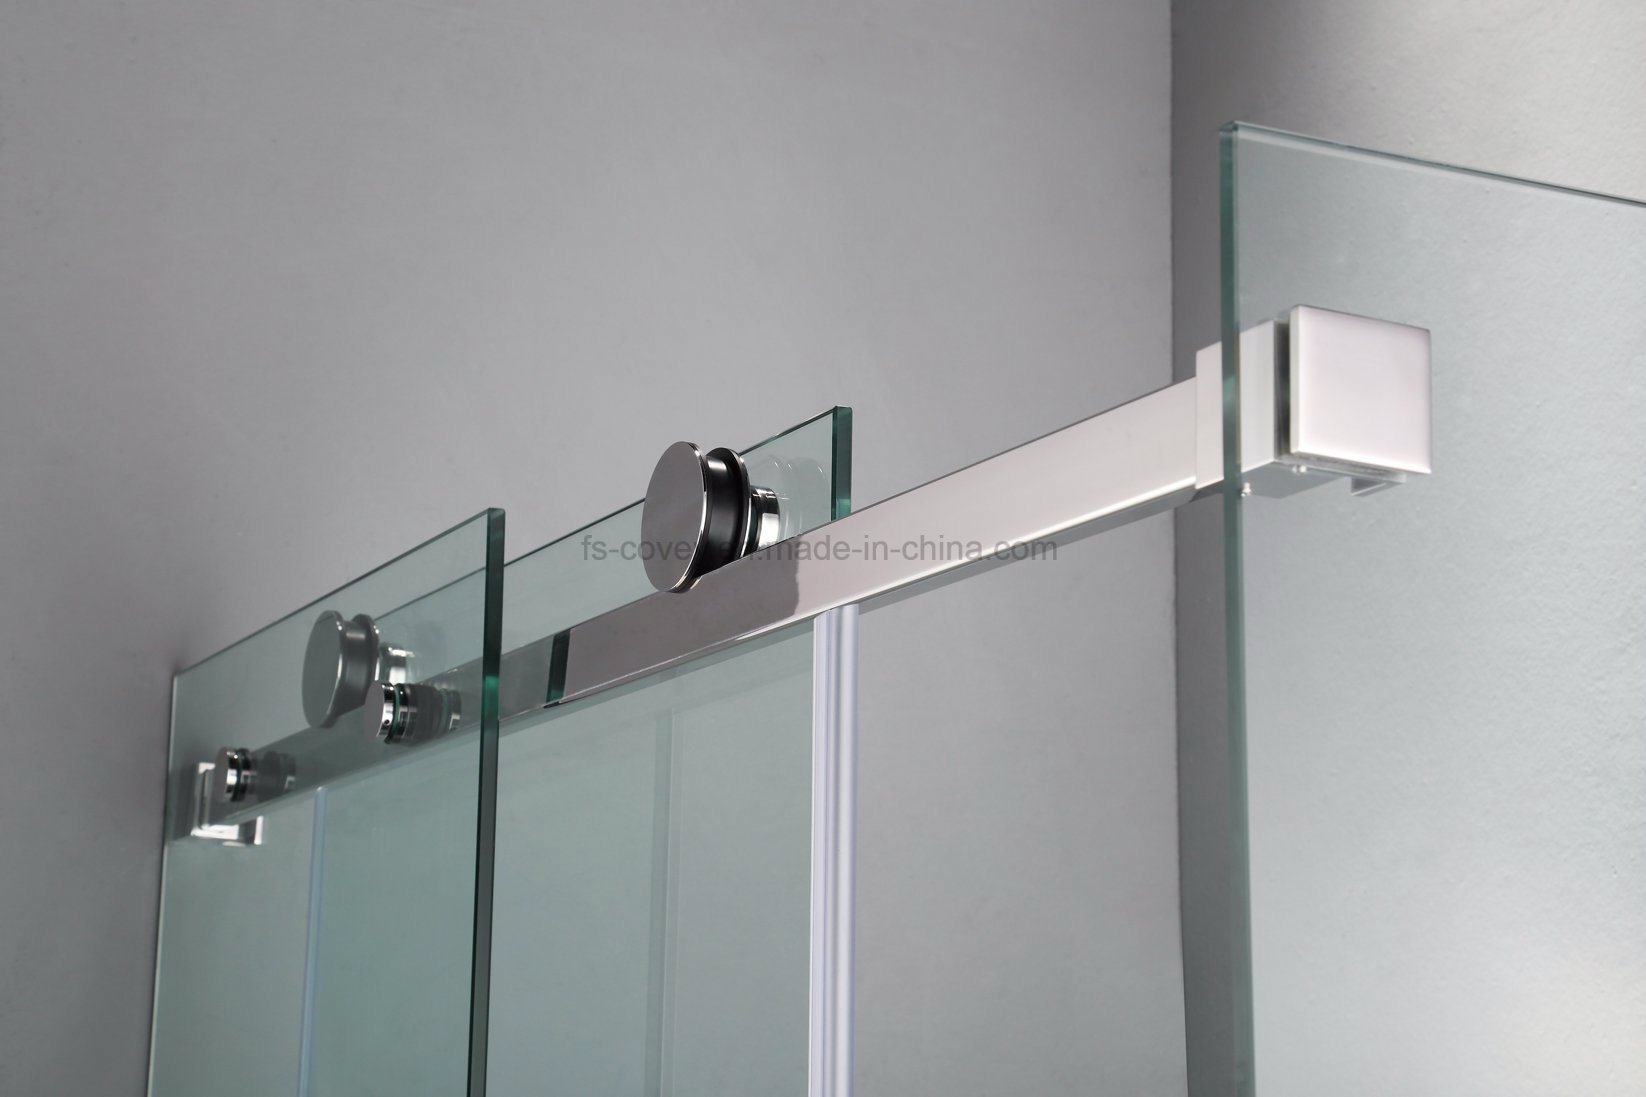 Sliding Bathroom Shower Enclosure with Stainless Steel Wall Frame (UPC-05)